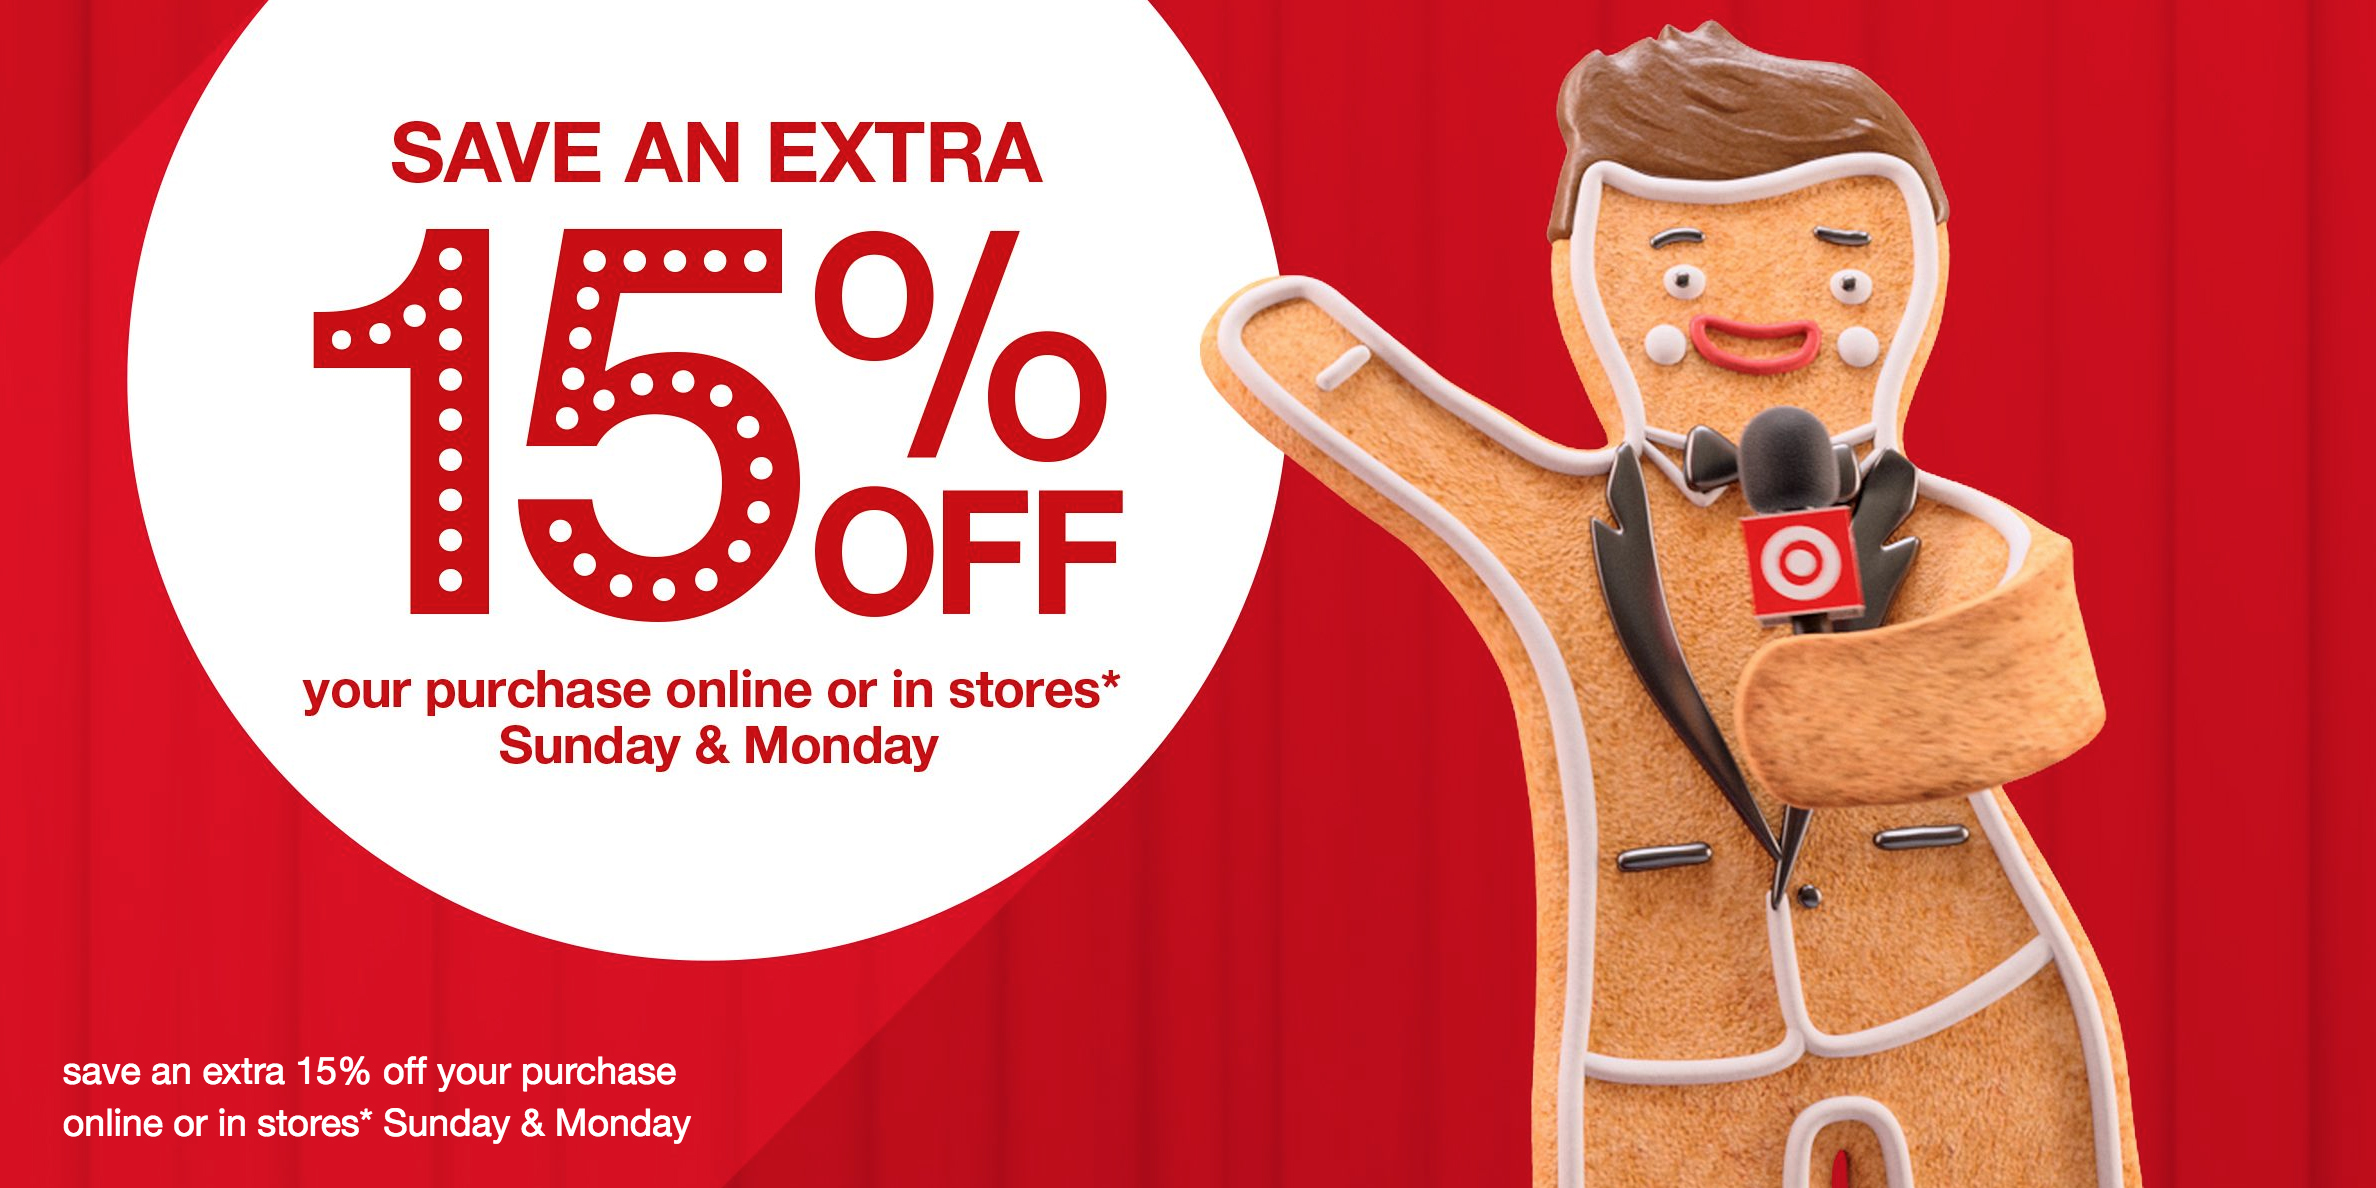 target-15-off-cyber-monday